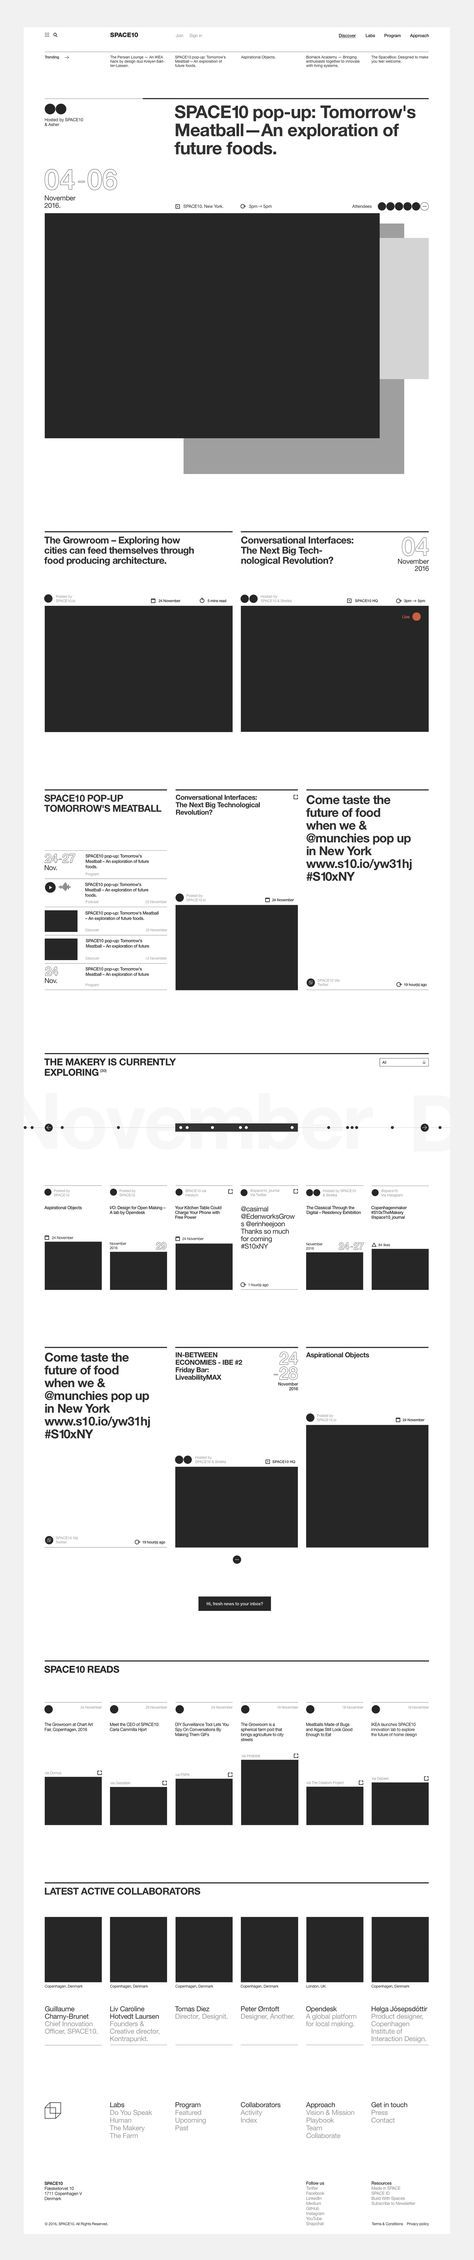 found by hedviggen ⚓️ on pinterest   editorial design   pages   layout   online   web #typeitem198 image